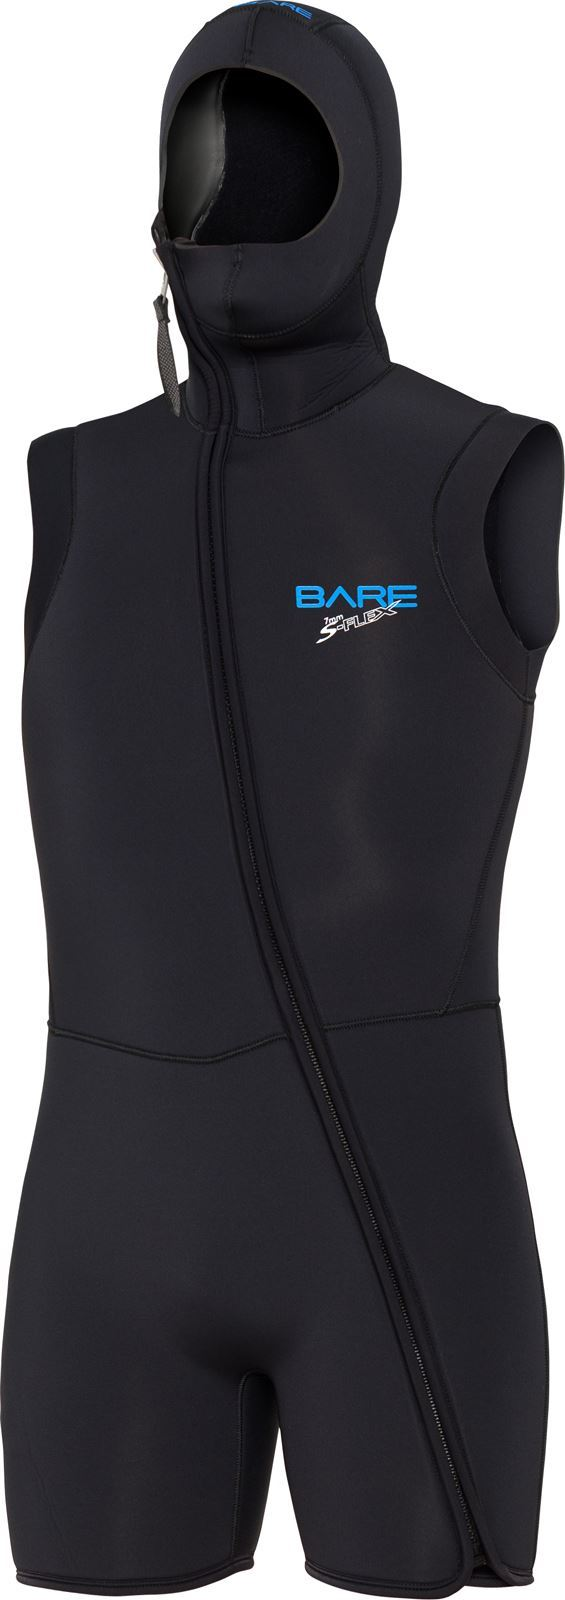 Bare 7mm step-in hooded vest S-FLEX BLK thumbnail